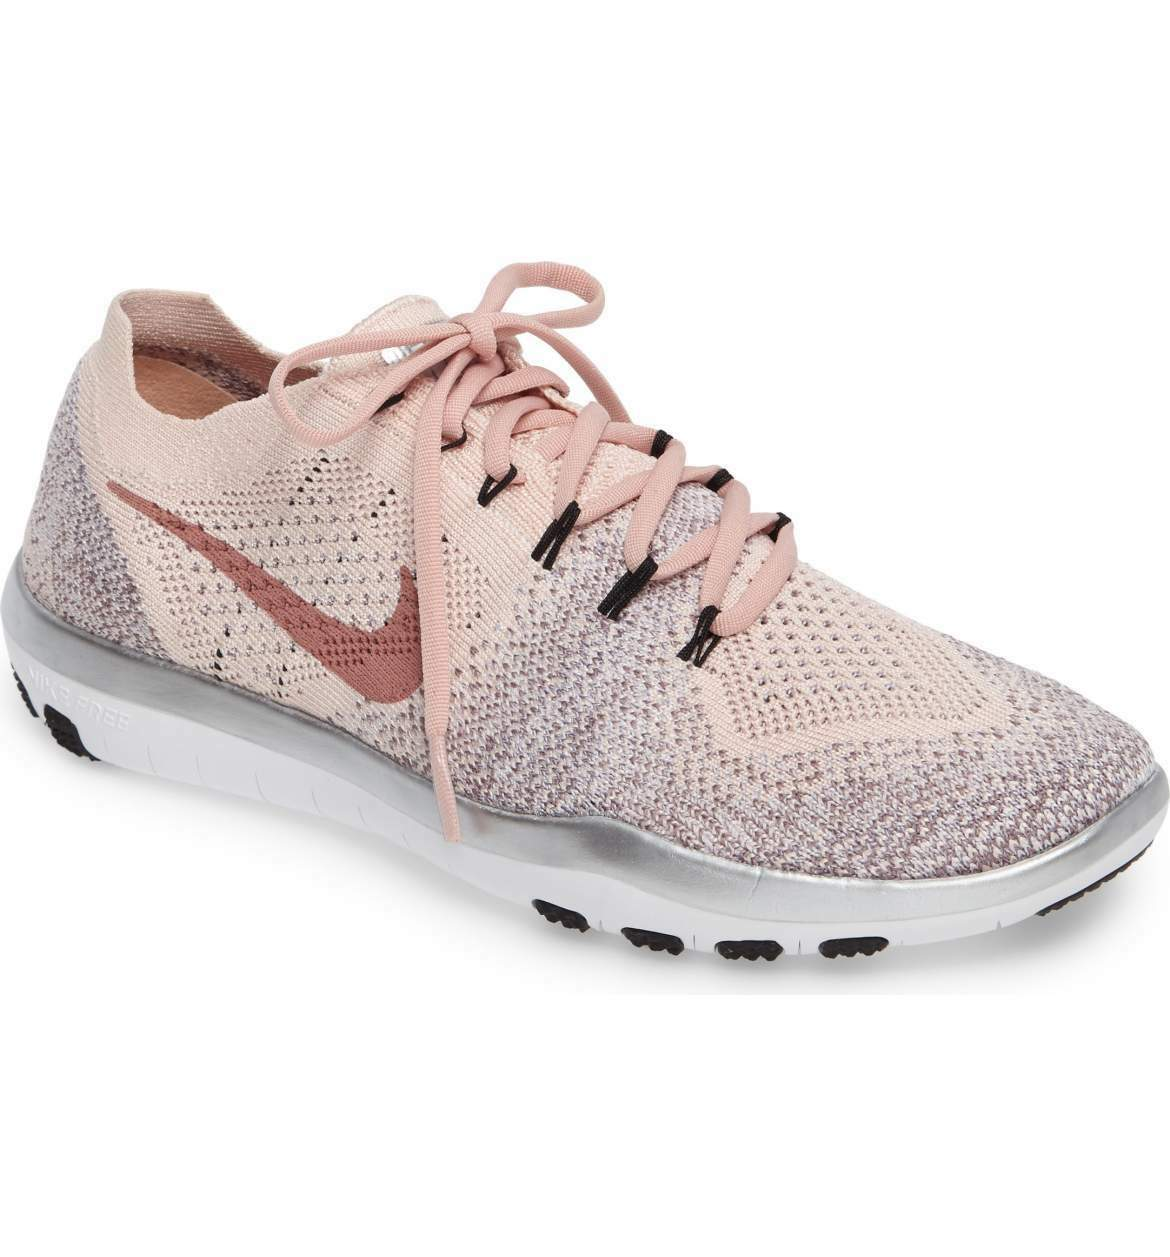 New Nike Free Flyknit Focus 2 Bionic Training Shoes 10.5 Blush Sunset Pink